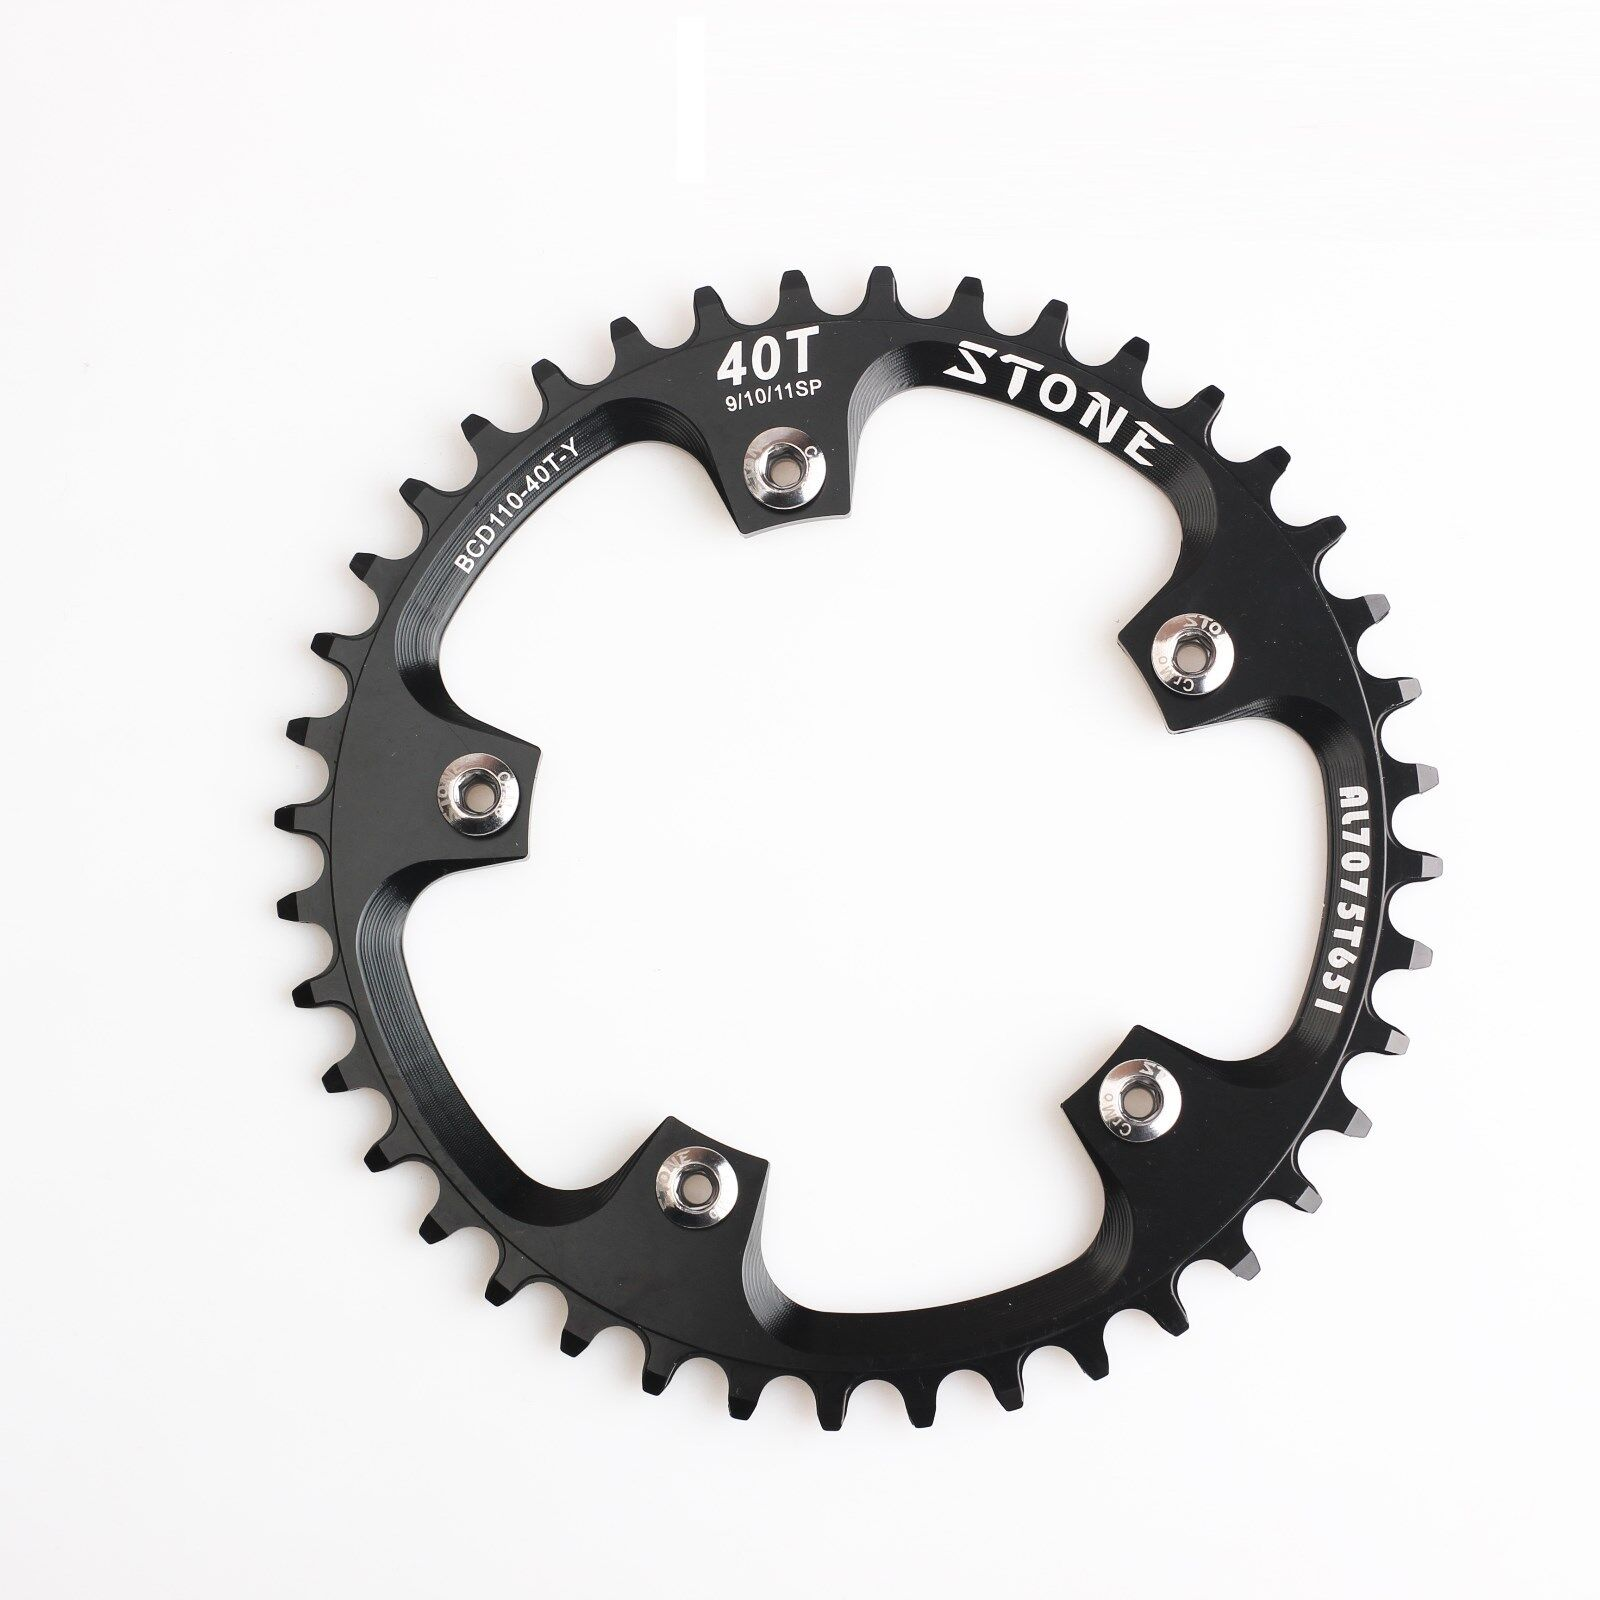 BCD110 Chainring Circle 5 bolts Narrow Wide for  Road Folding bicycle 1x System  trendy